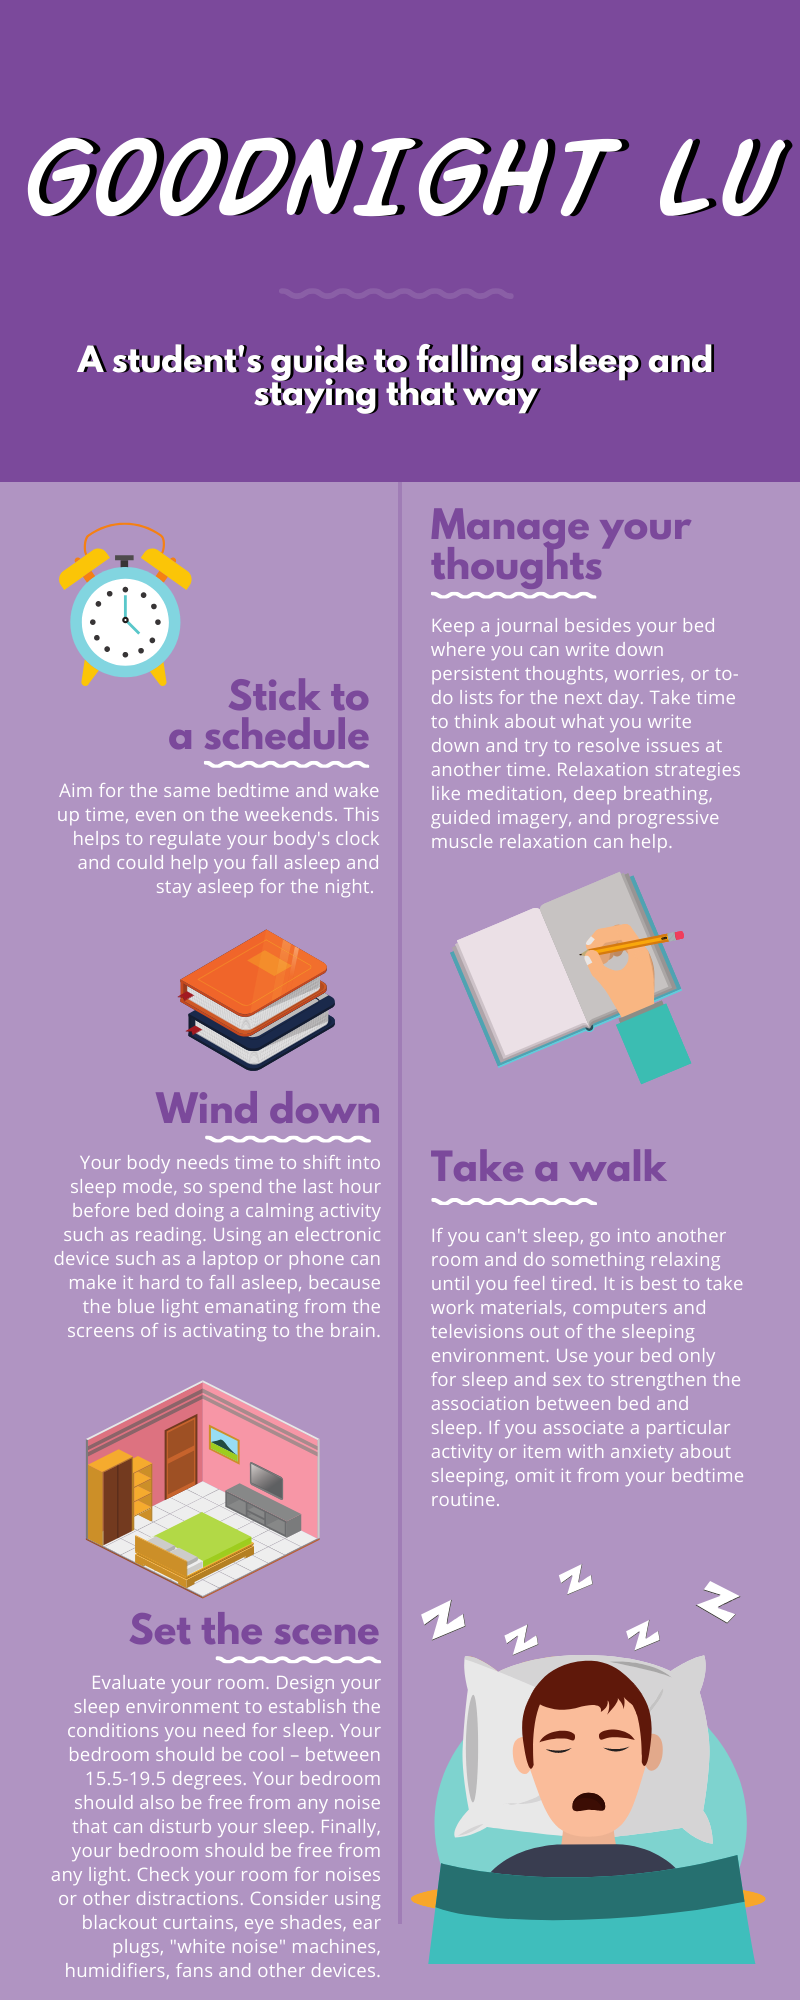 Sleep habits infographic. This is bad to have on our website.